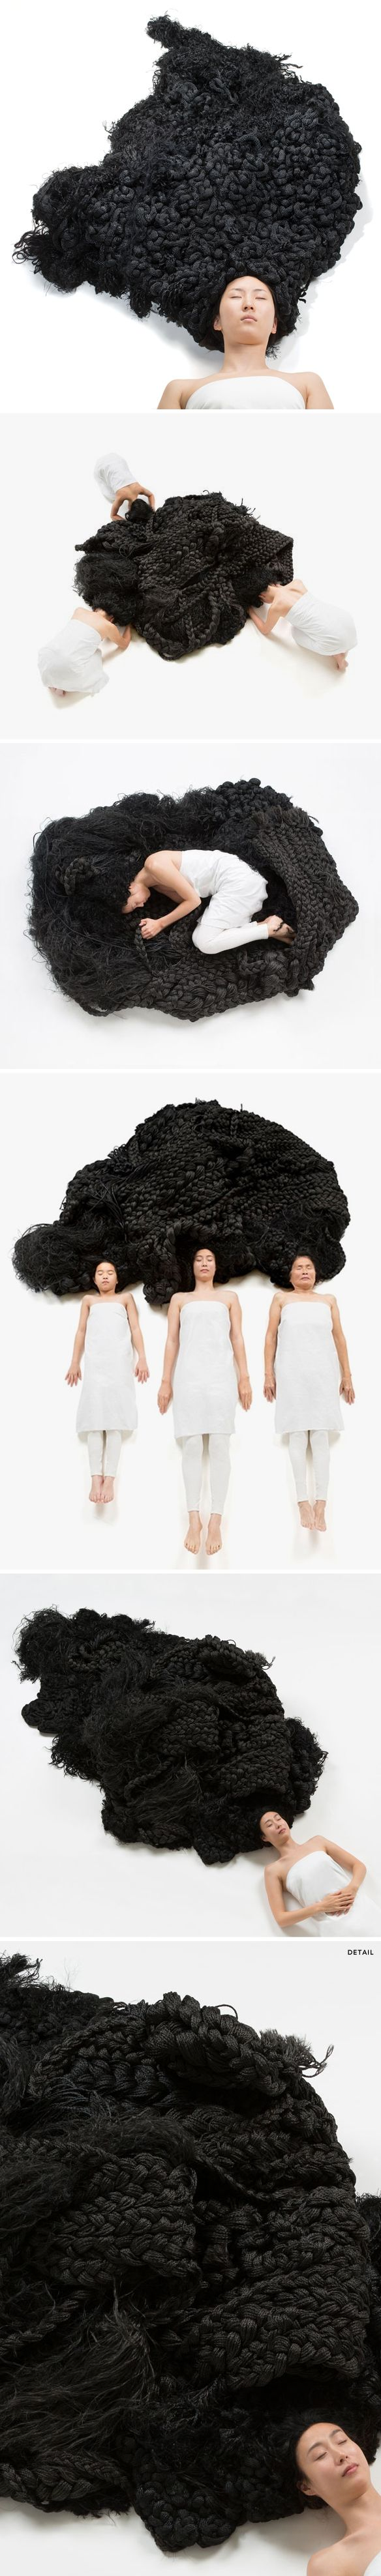 The Jealous Curator /// curated contemporary art  /// yuni kim lang